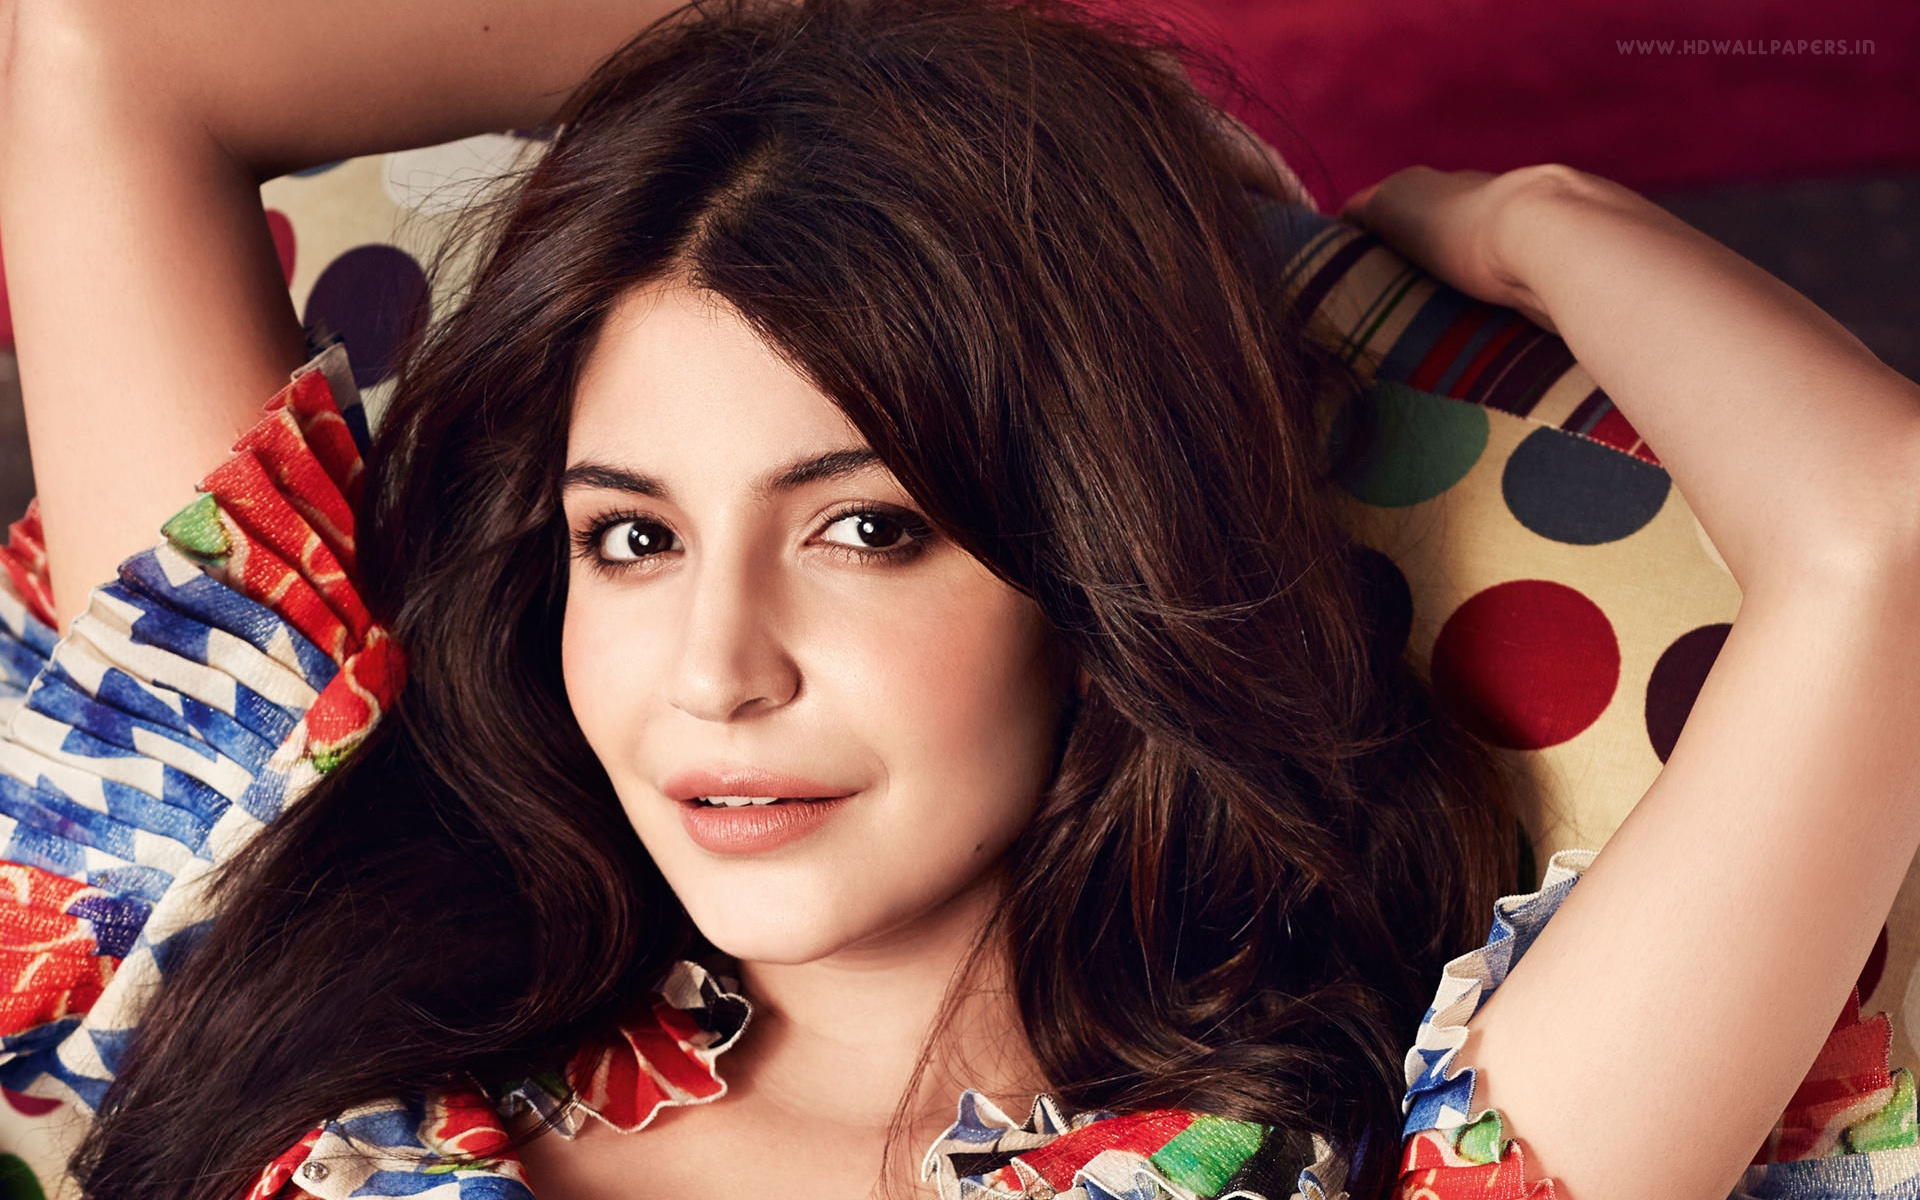 anushka sharma 2016 wallpapers in jpg format for free download